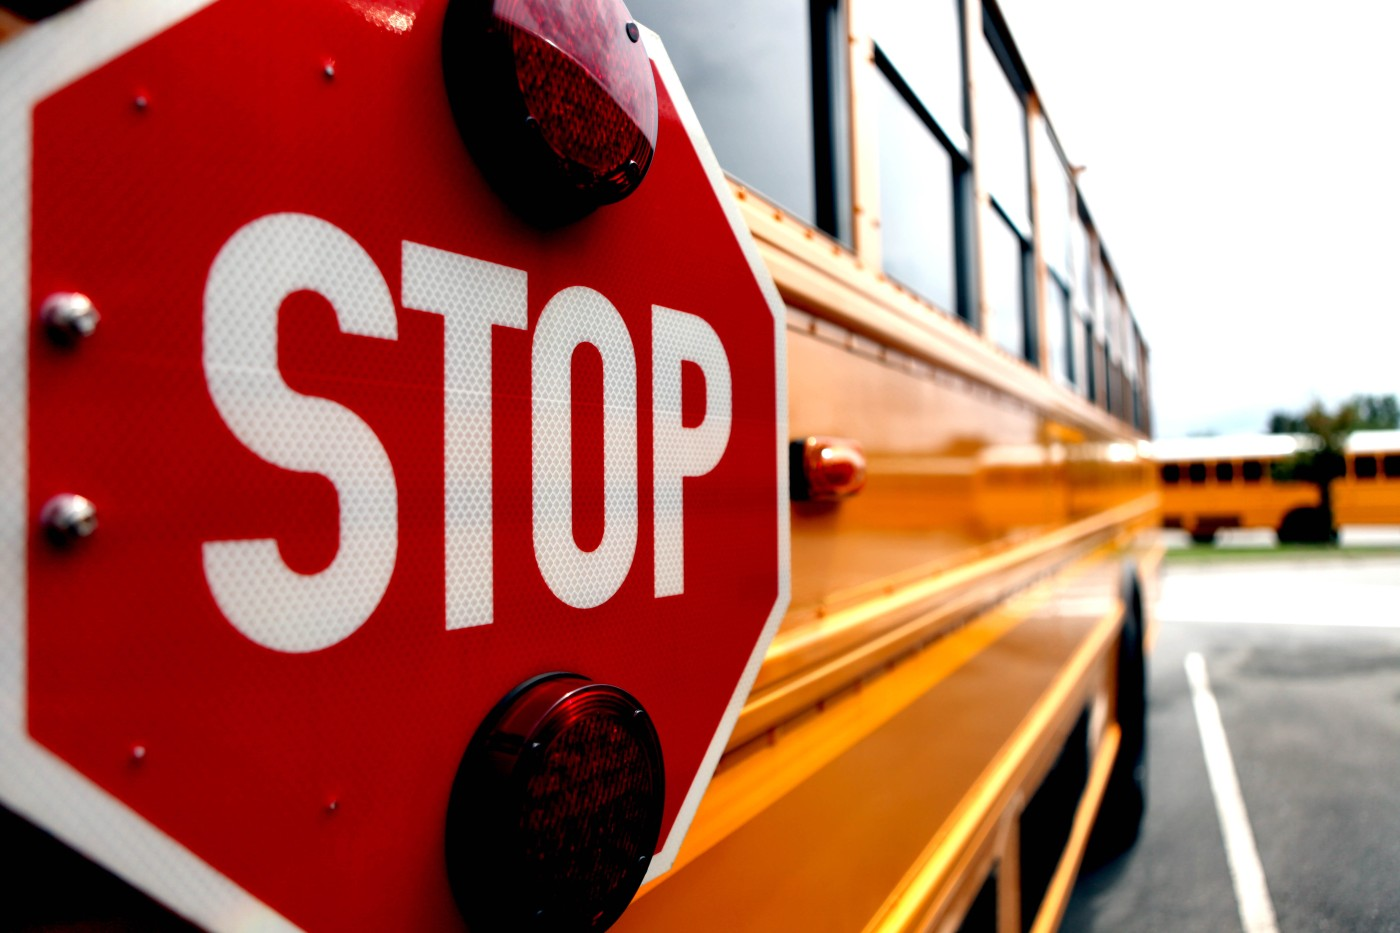 According to Base Order 5560.2N, no vehicle is to pass a school bus that is stopped, or in the process of stopping, to pick up or drop off children. Breaking this order will cost a driver a 90-day driving suspension on base.